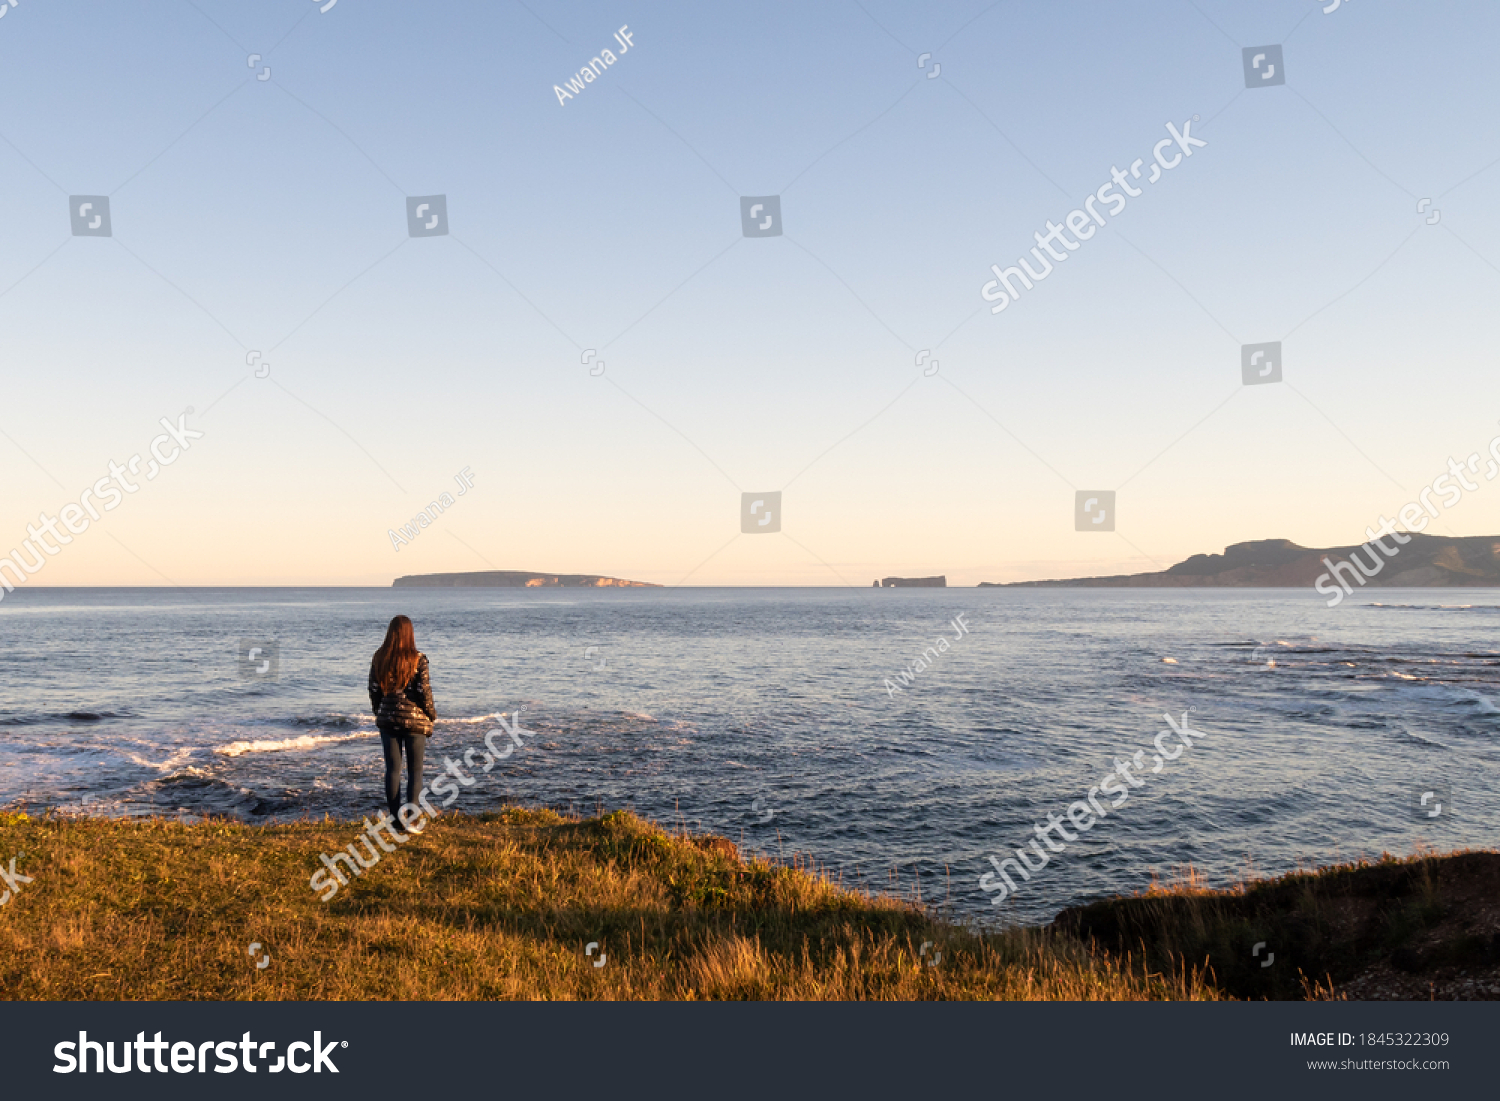 stock-photo-young-woman-standing-on-the-